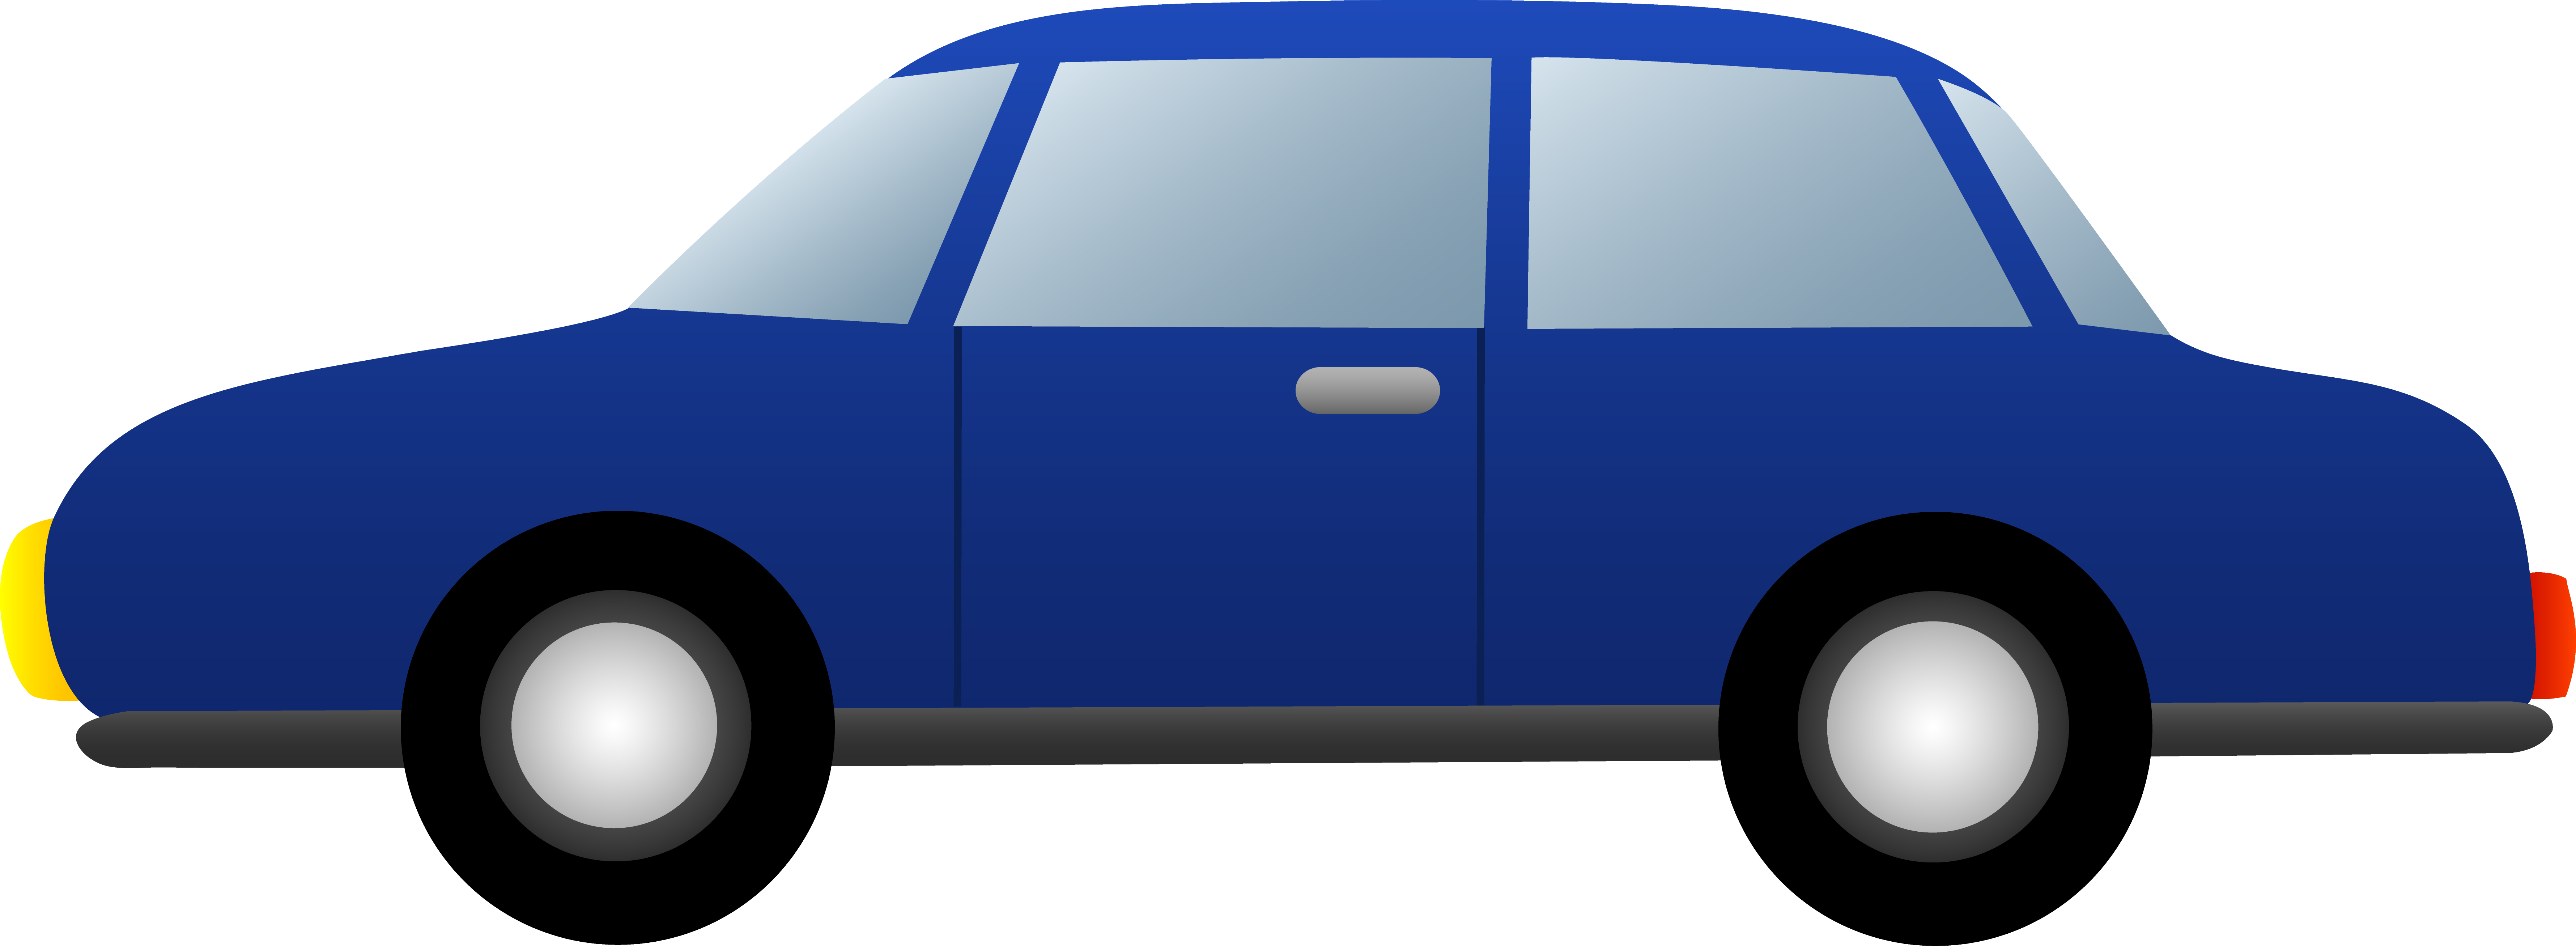 Police Car Clipart | Clipart Panda - Free Clipart Images